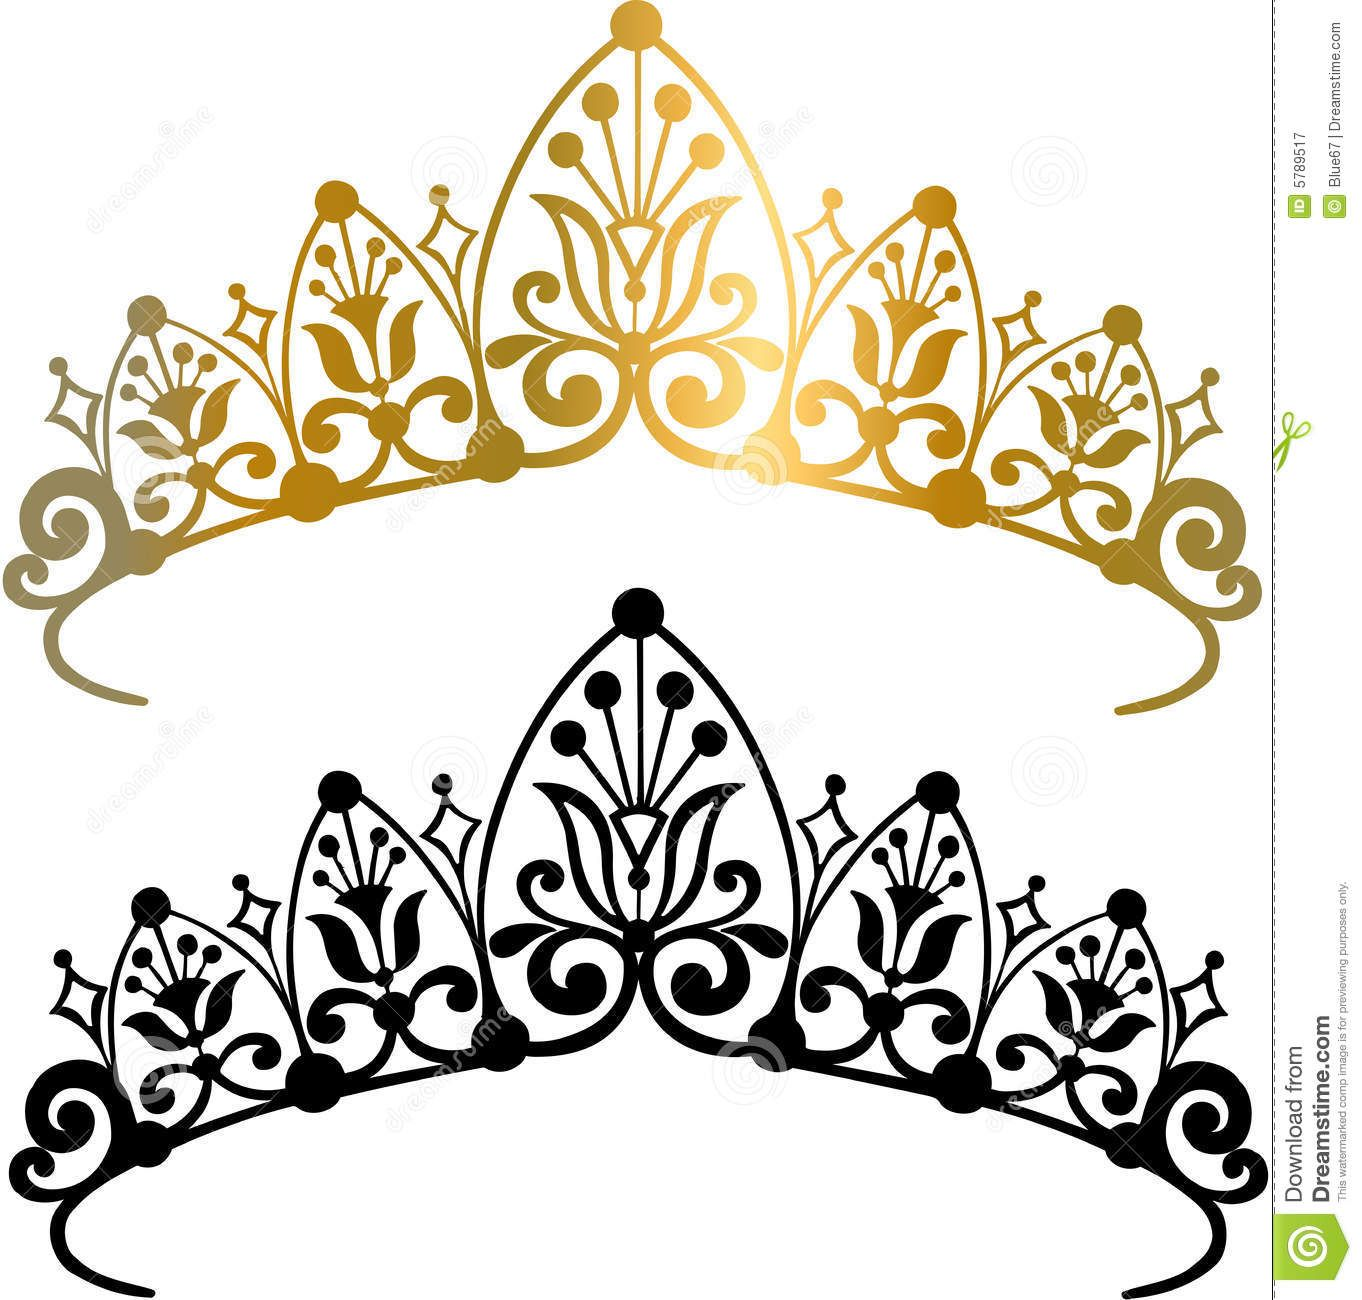 tiara crown vector illustration download from over 47 million high rh pinterest co uk tiara vector image tiara vector download